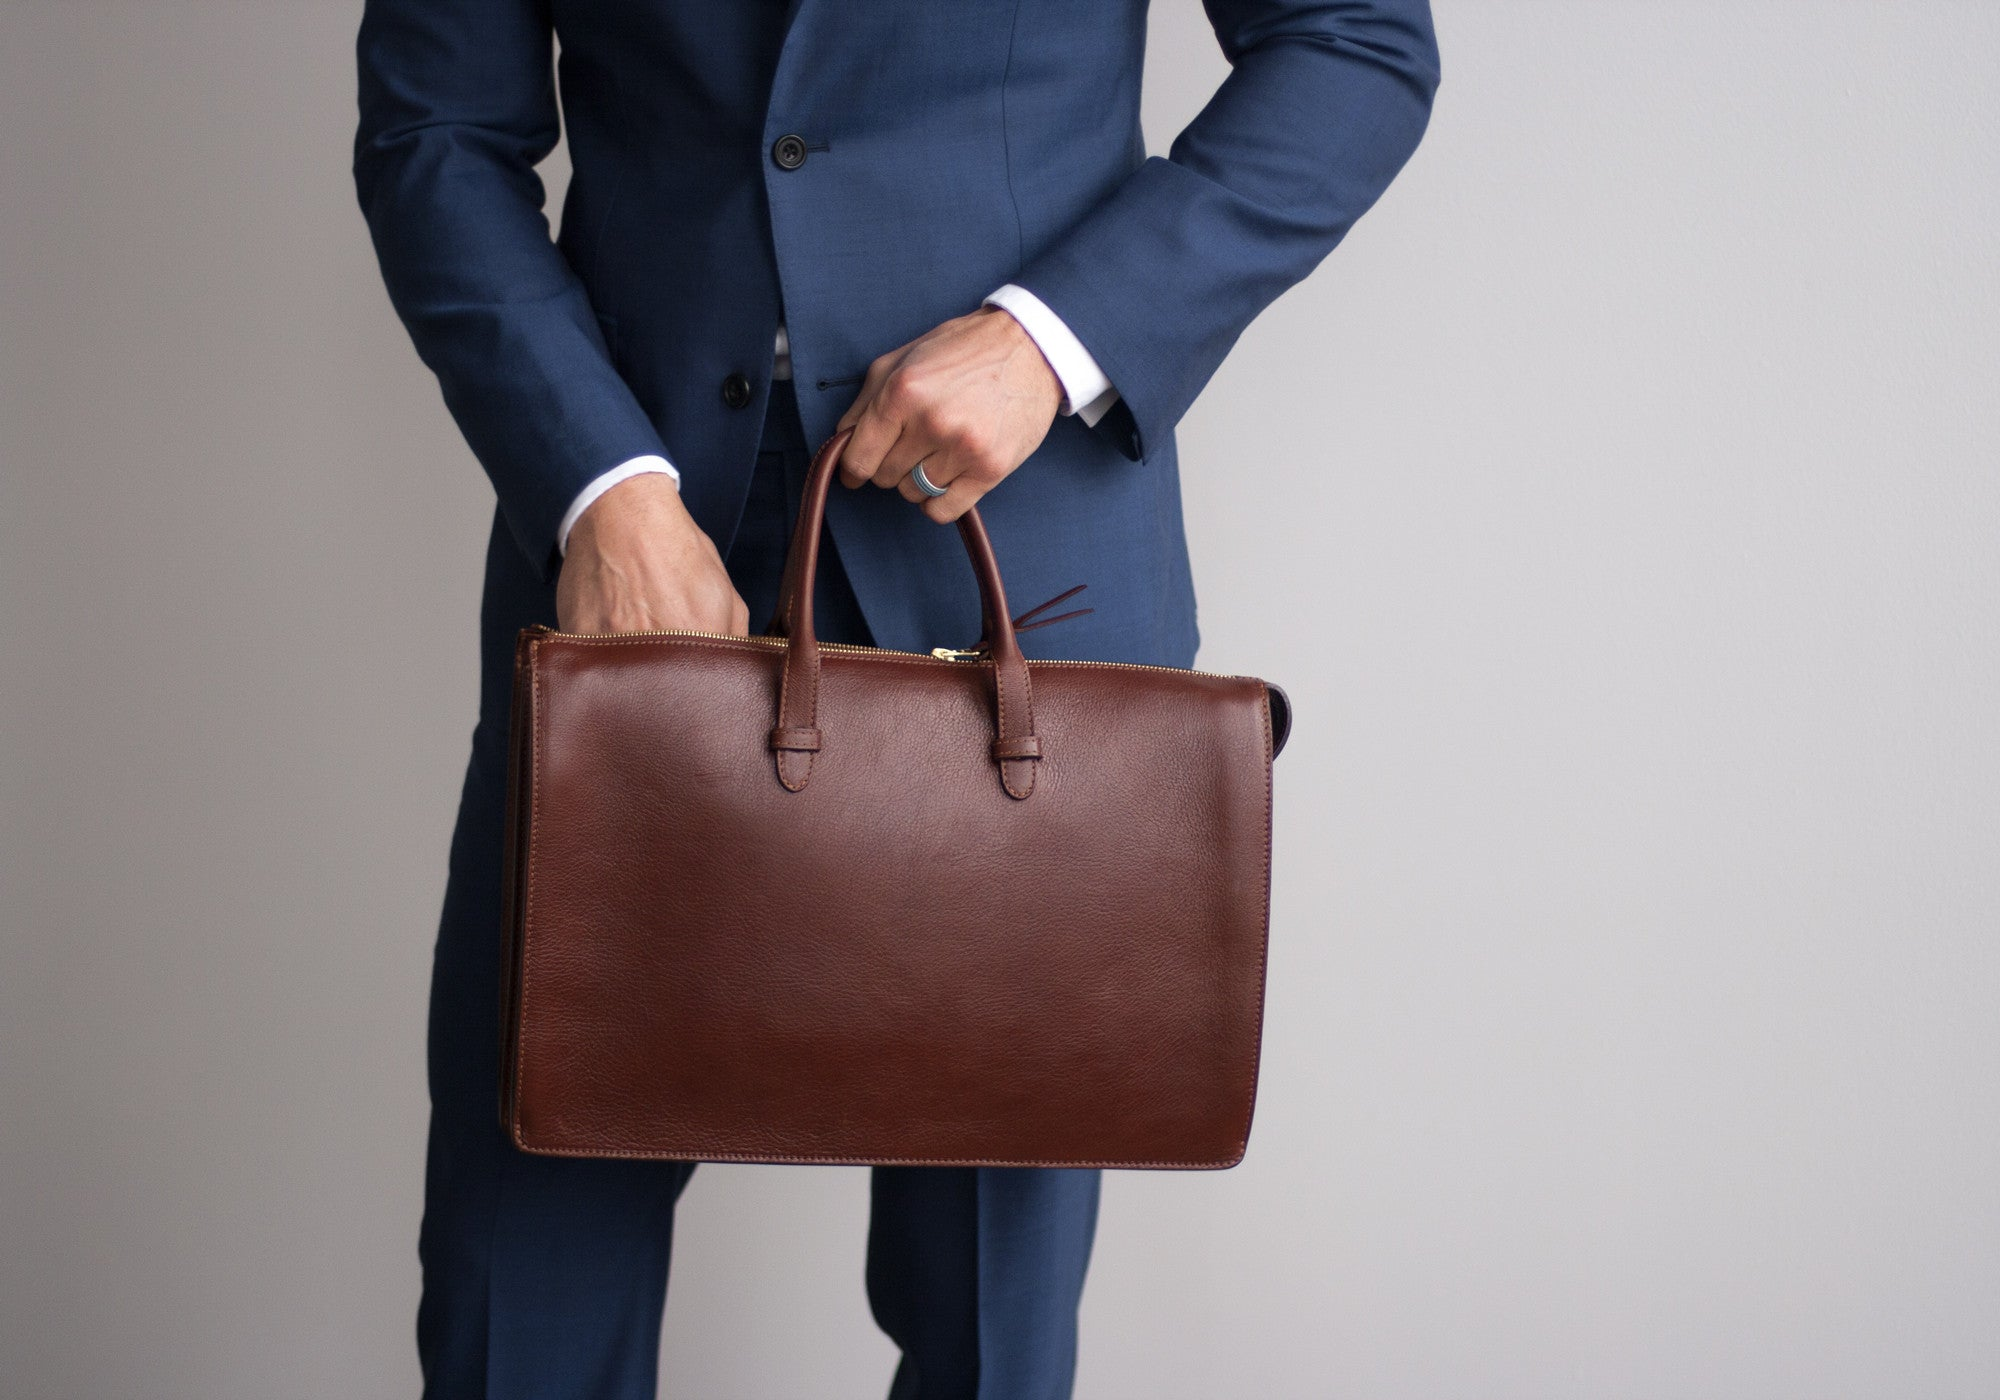 The Triumph Briefcase Lifestyle